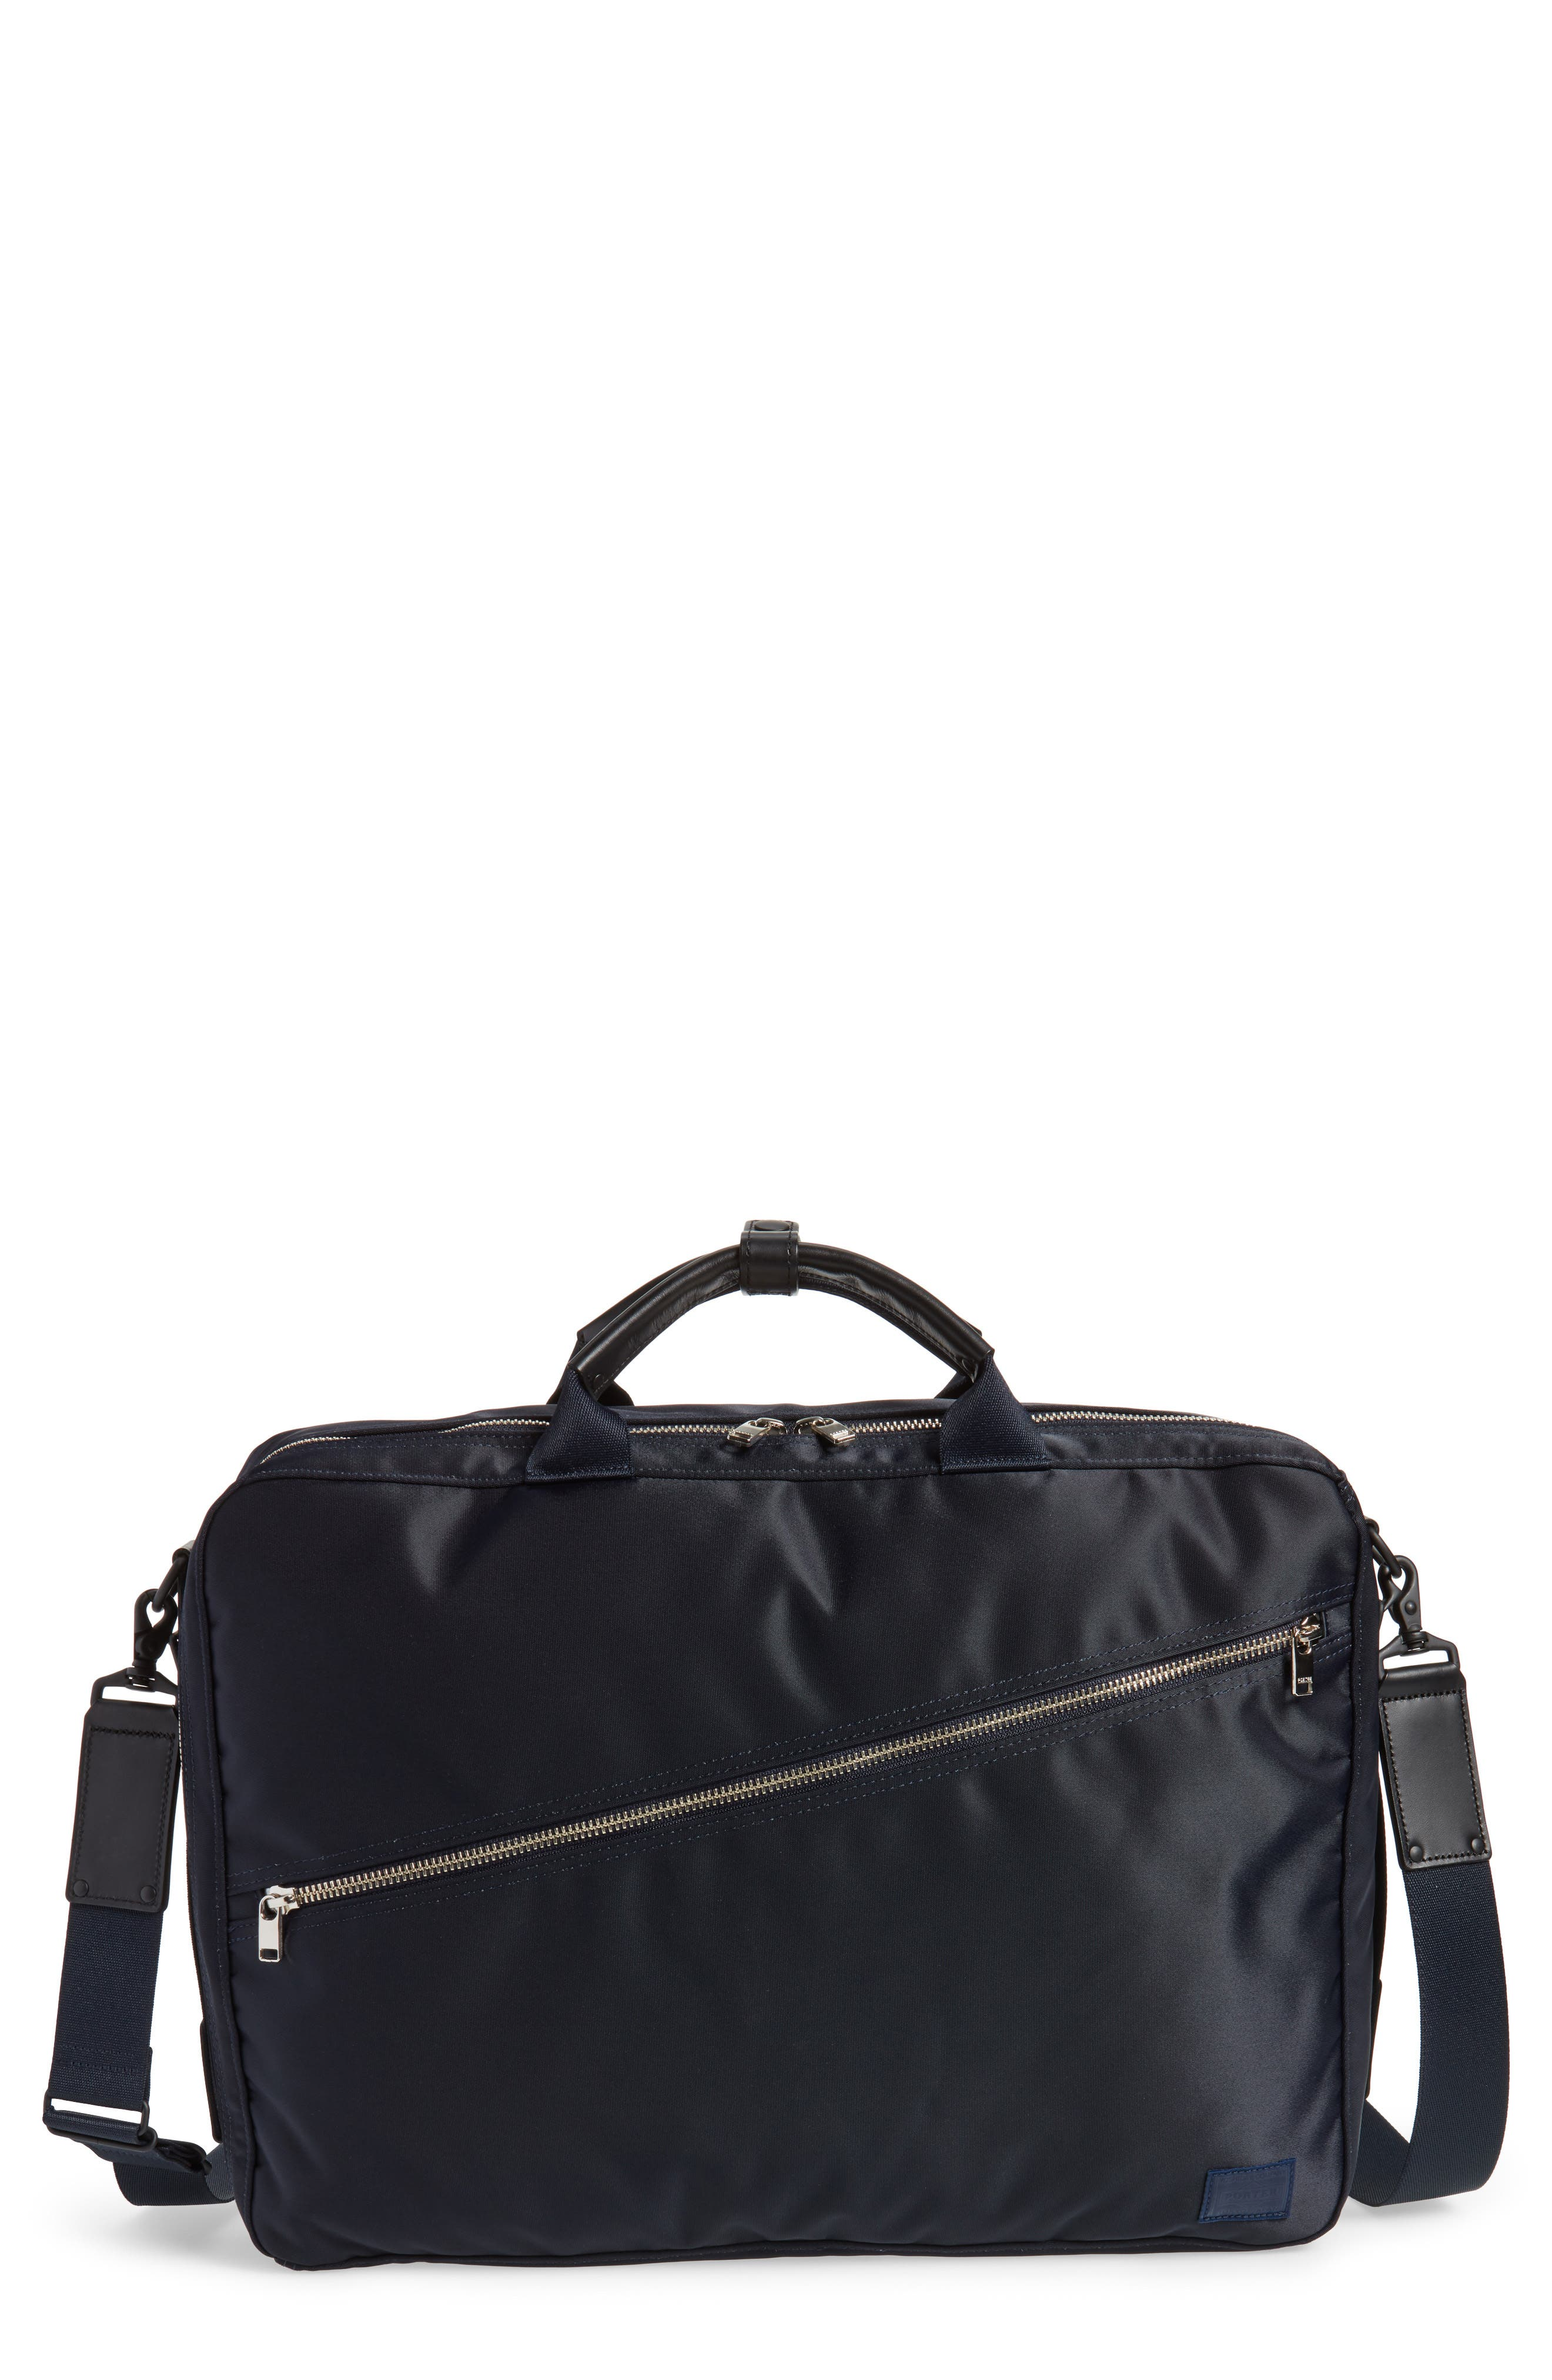 Porter-Yoshida & Co. Lift Convertible Briefcase,                             Main thumbnail 1, color,                             Navy